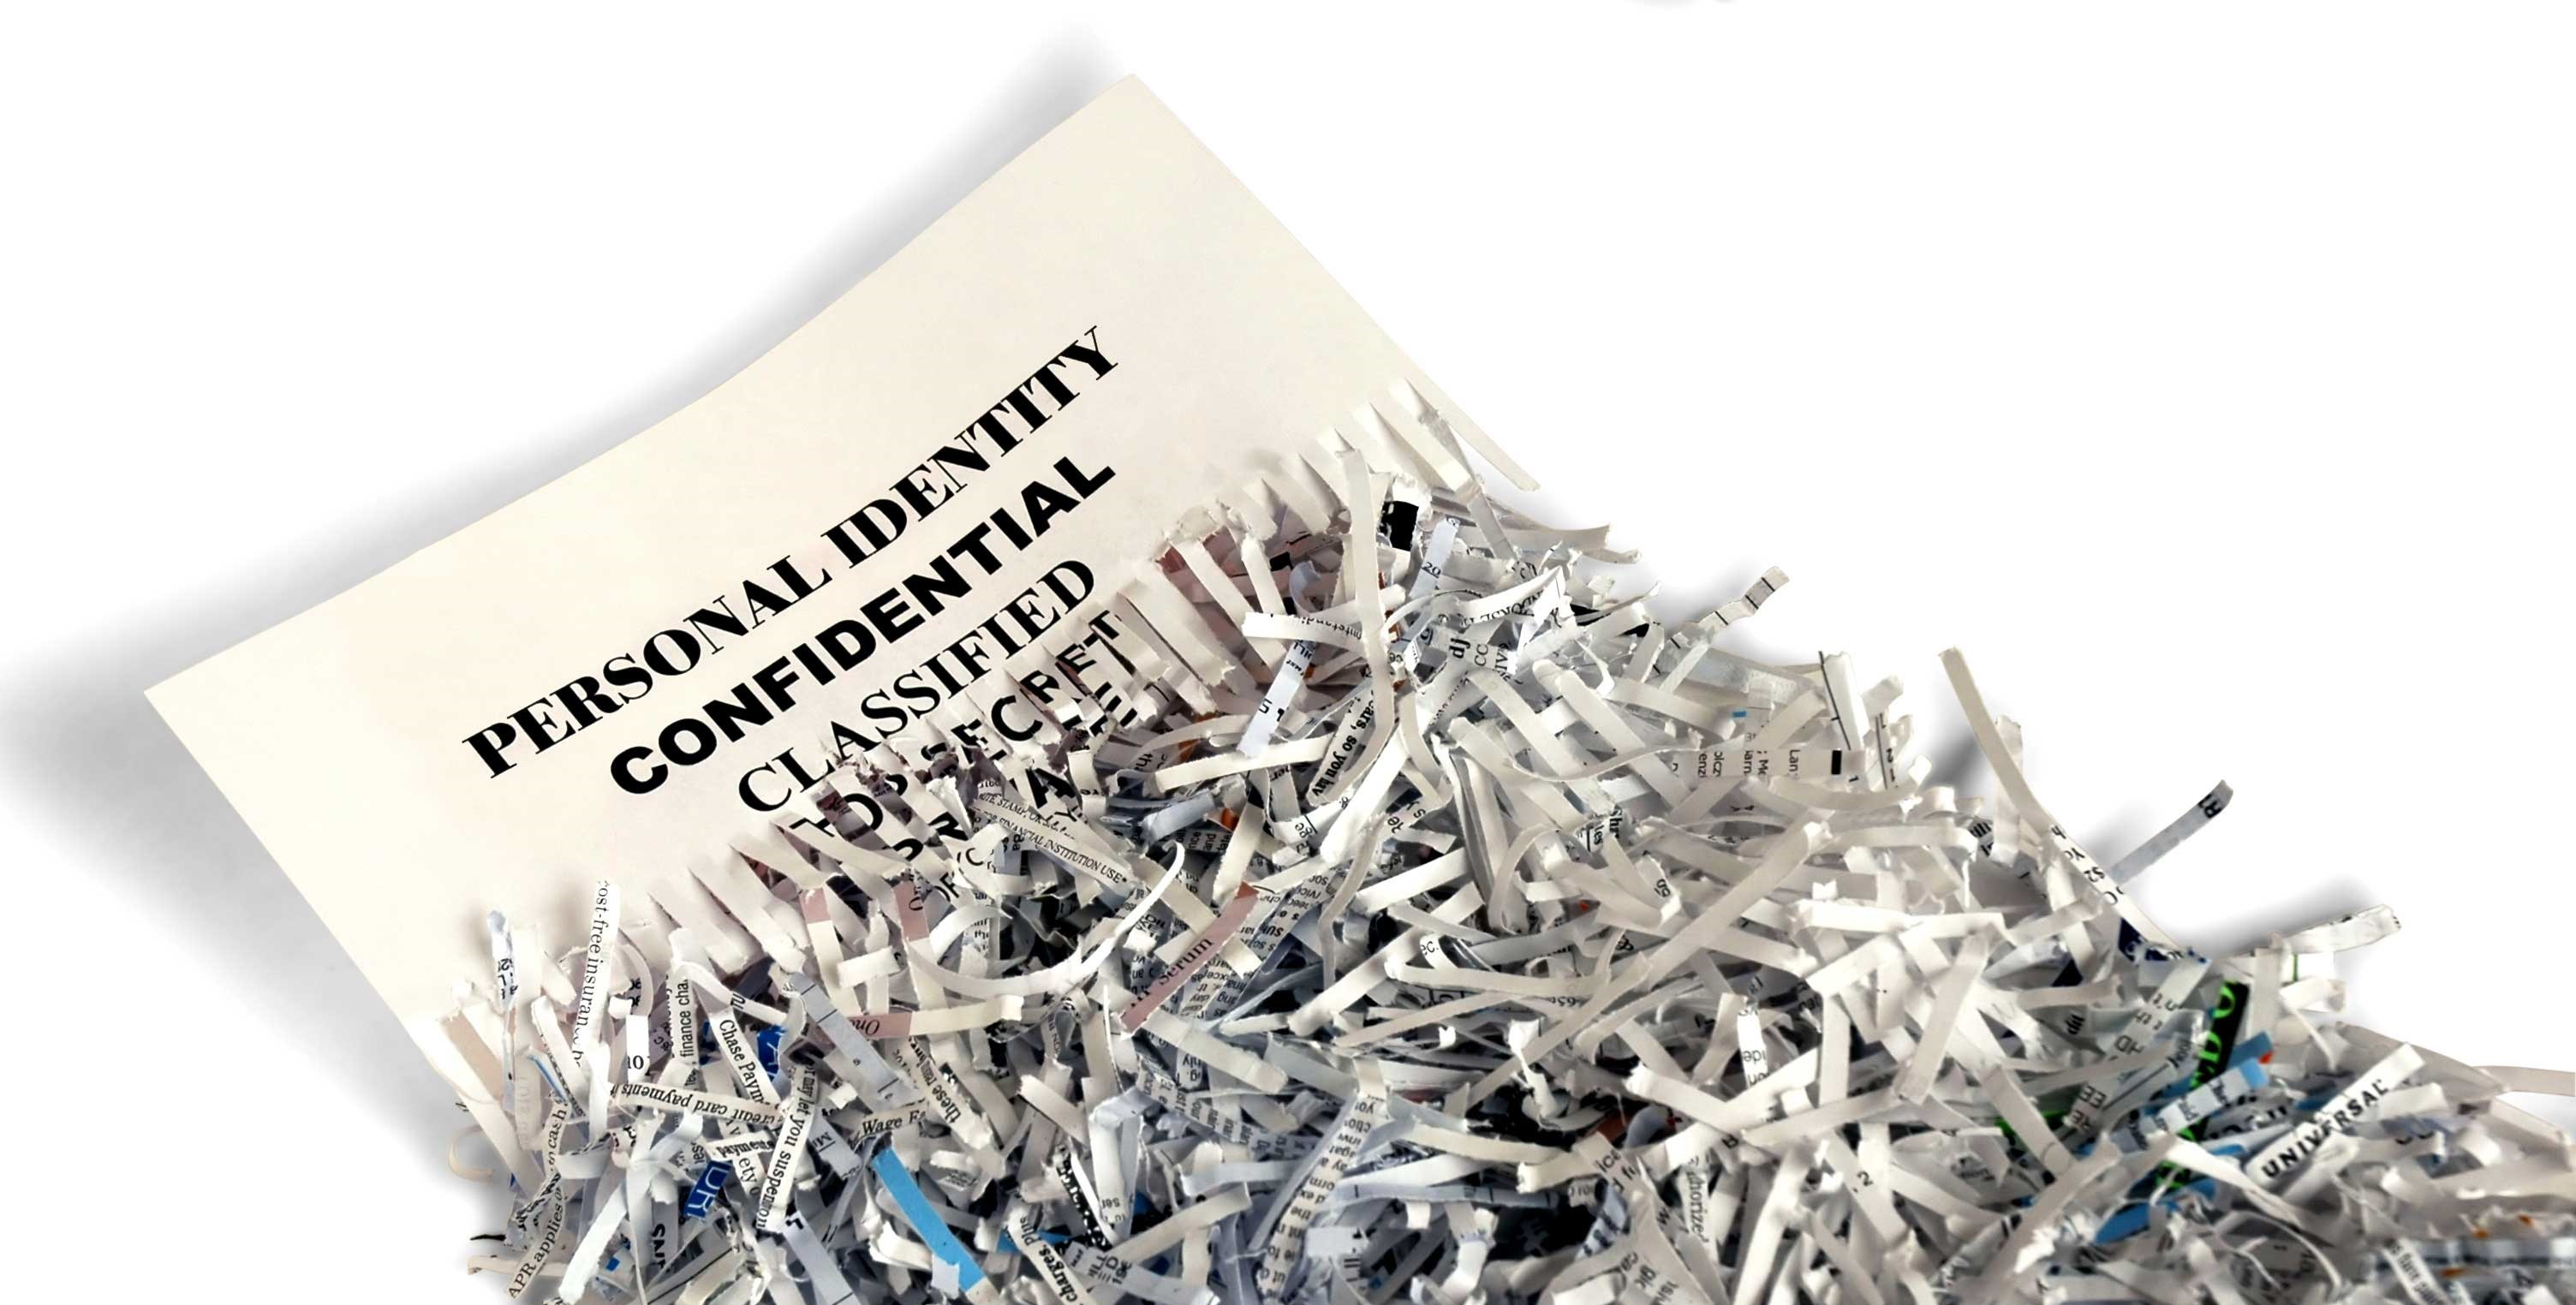 shredding personal confidential secret paperwork secure document destruction